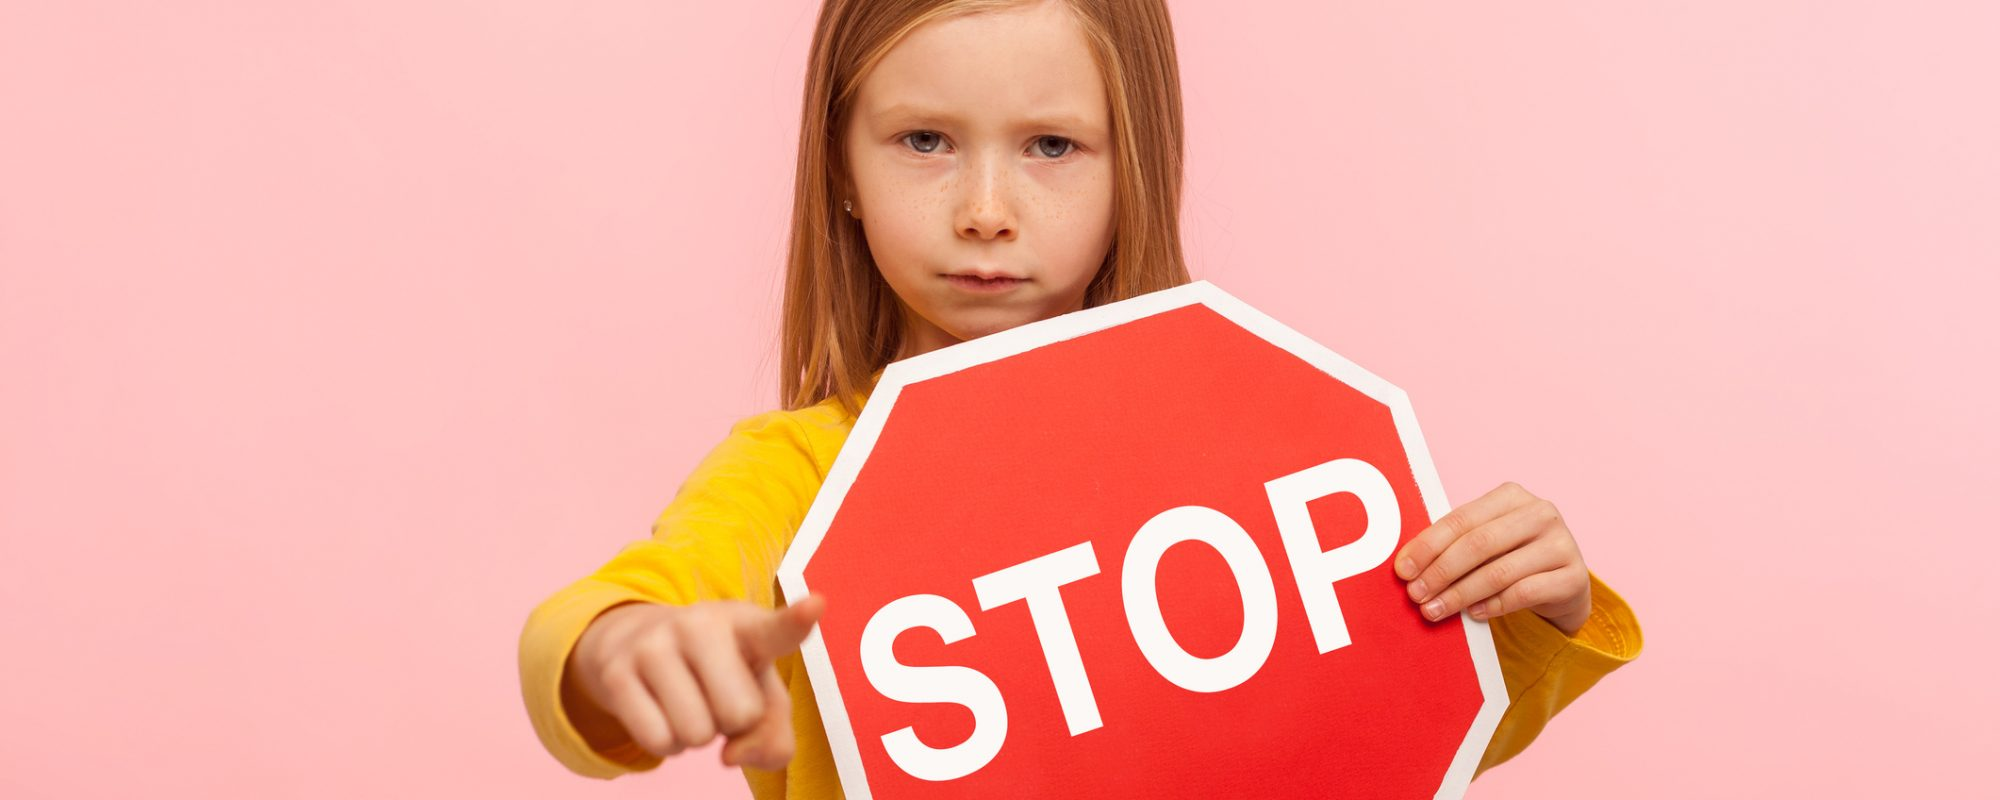 Portrait of cute serious bossy little girl holding Stop symbol, showing red traffic sign and pointing to camera, warning you about road safety rules. indoor studio shot isolated on pink background